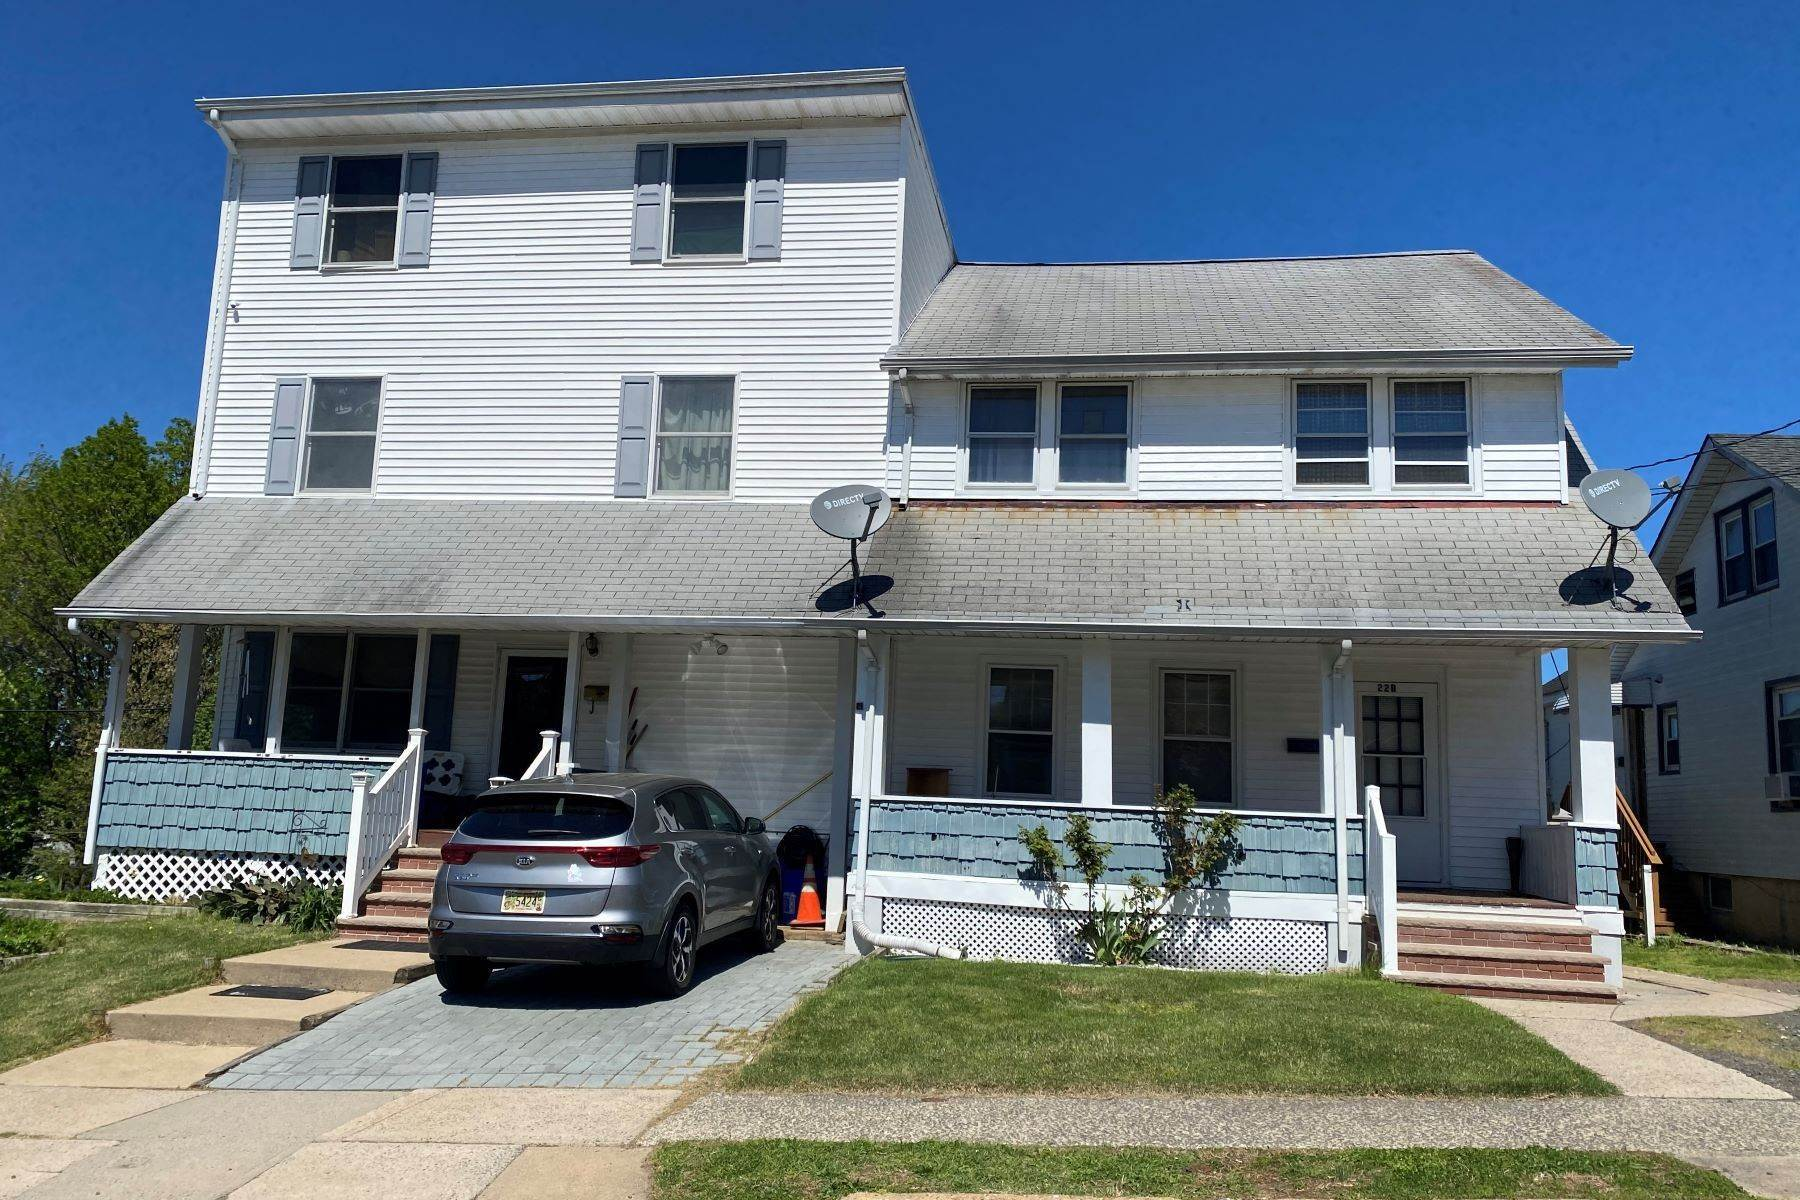 Multi-Family Homes for Sale at 22 James Street South River, New Jersey 08882 United States